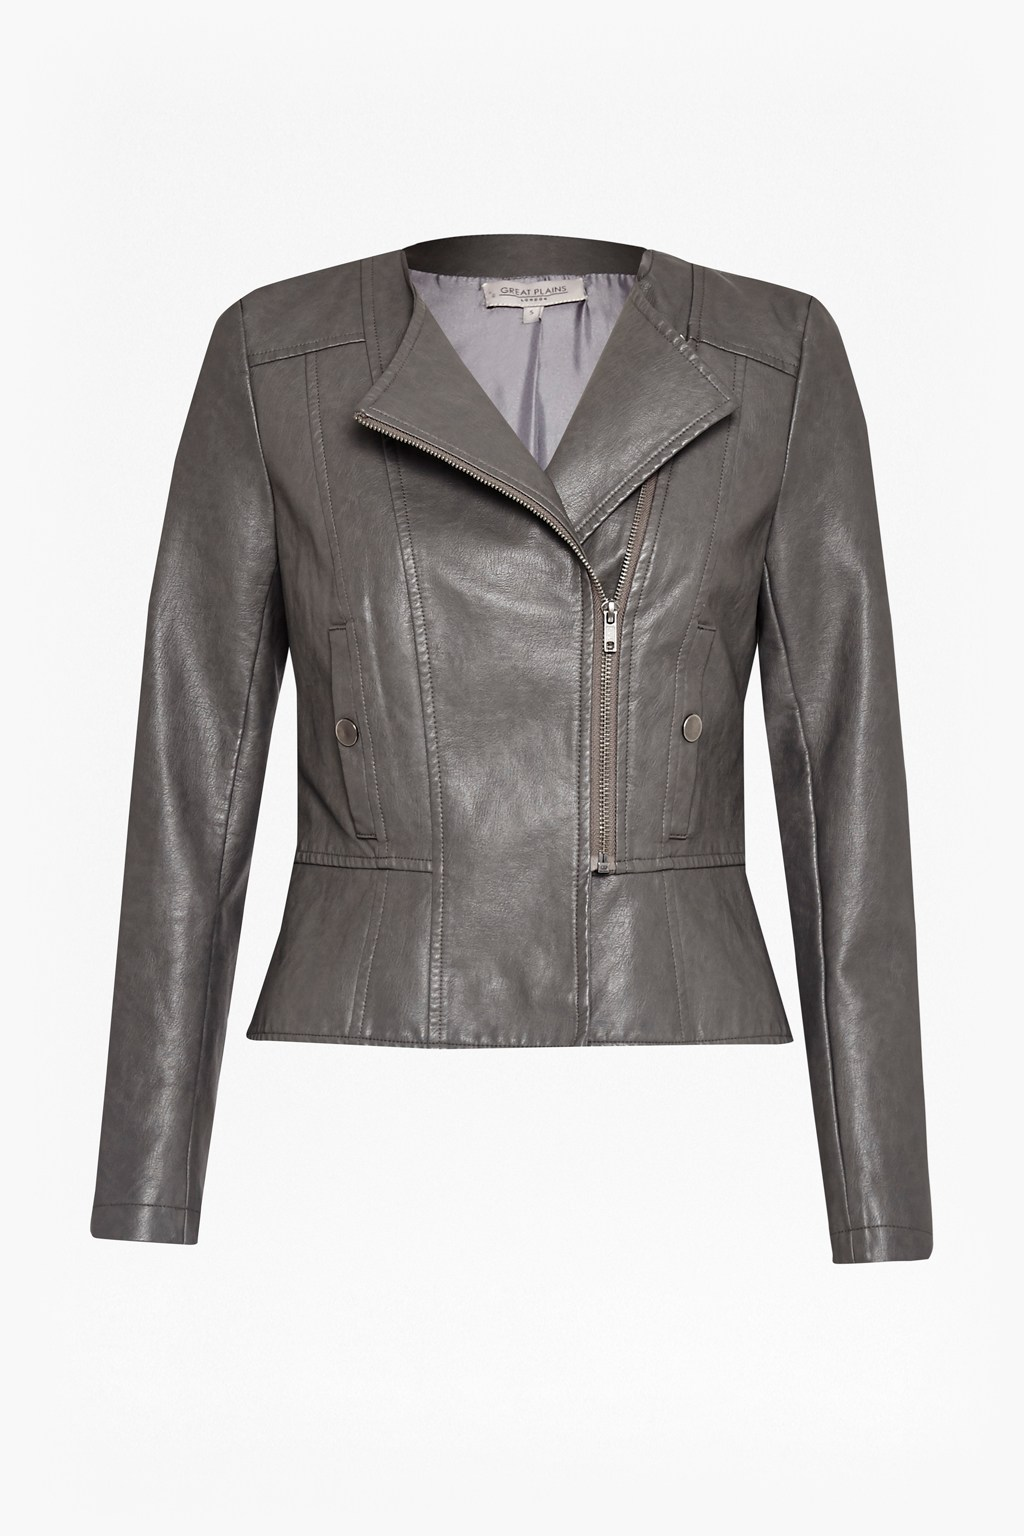 Greylady S Hearth February 2014: Womens Grey Leather Jackets Uk